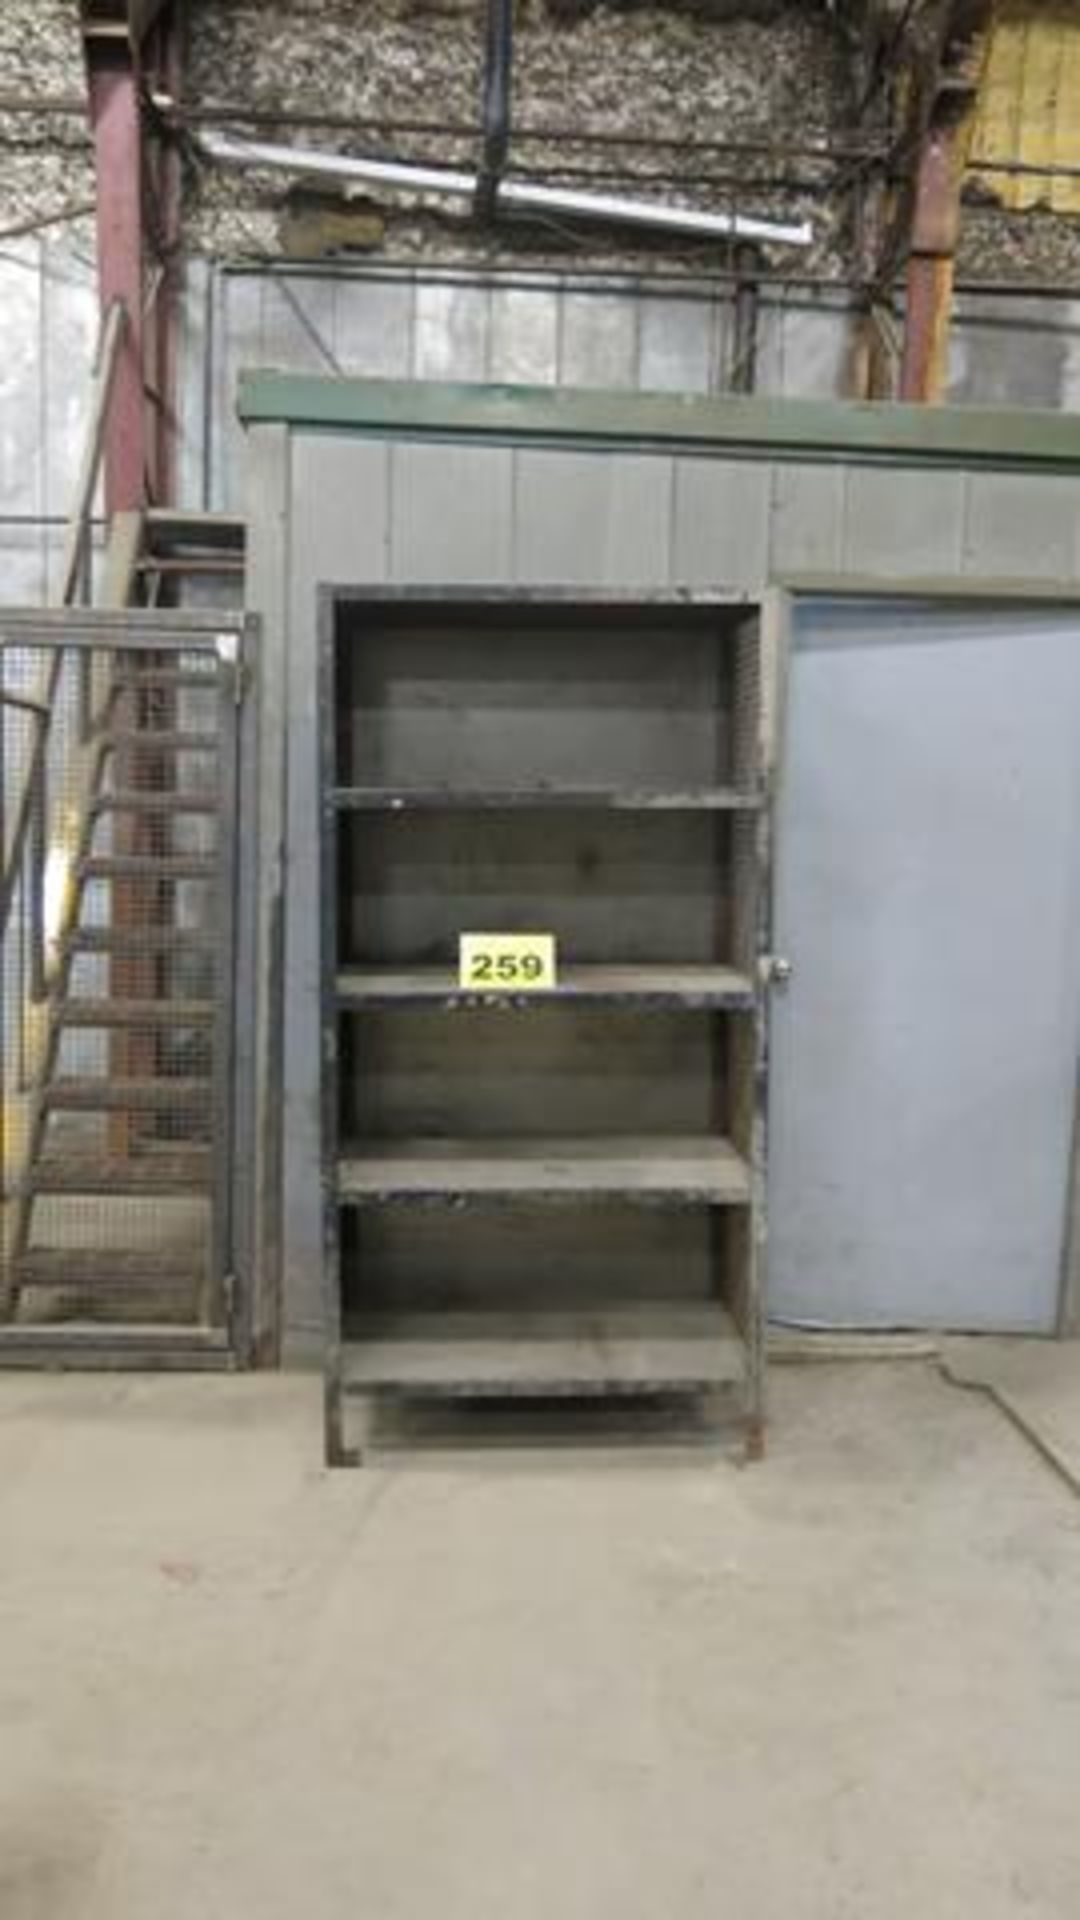 FOUR SHELF, STORAGE RACK, 6' X 2' X 4' (CONTENTS NOT INCLUDED)